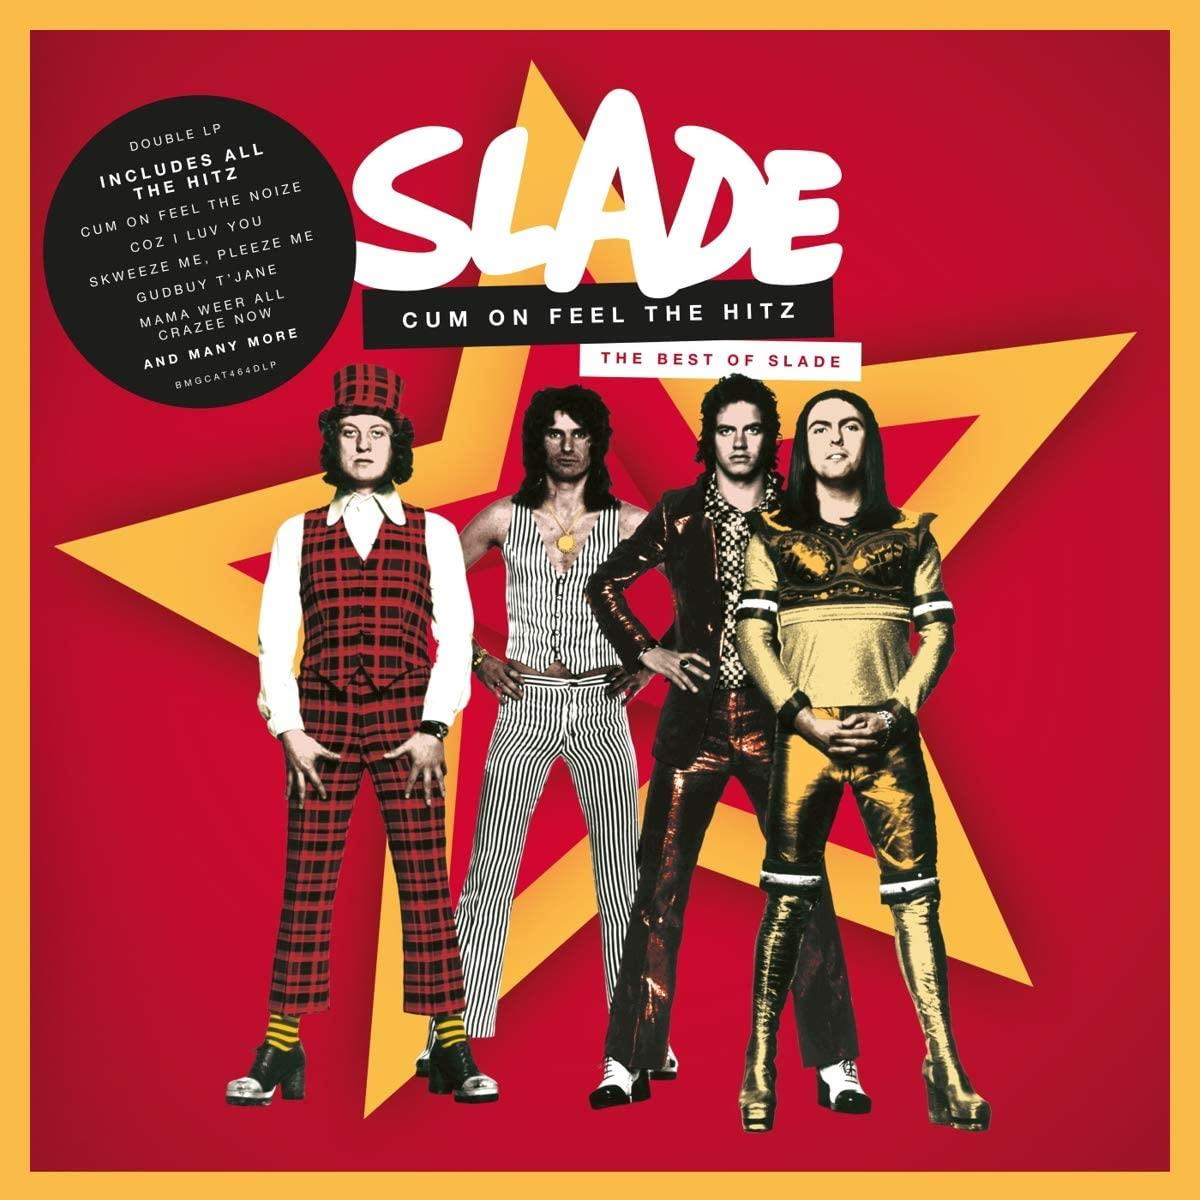 Cum On Feel the Hitz. The Best of Slade - Slade - Musik - BMG Rights Management LLC - 4050538608731 - 25/9-2020